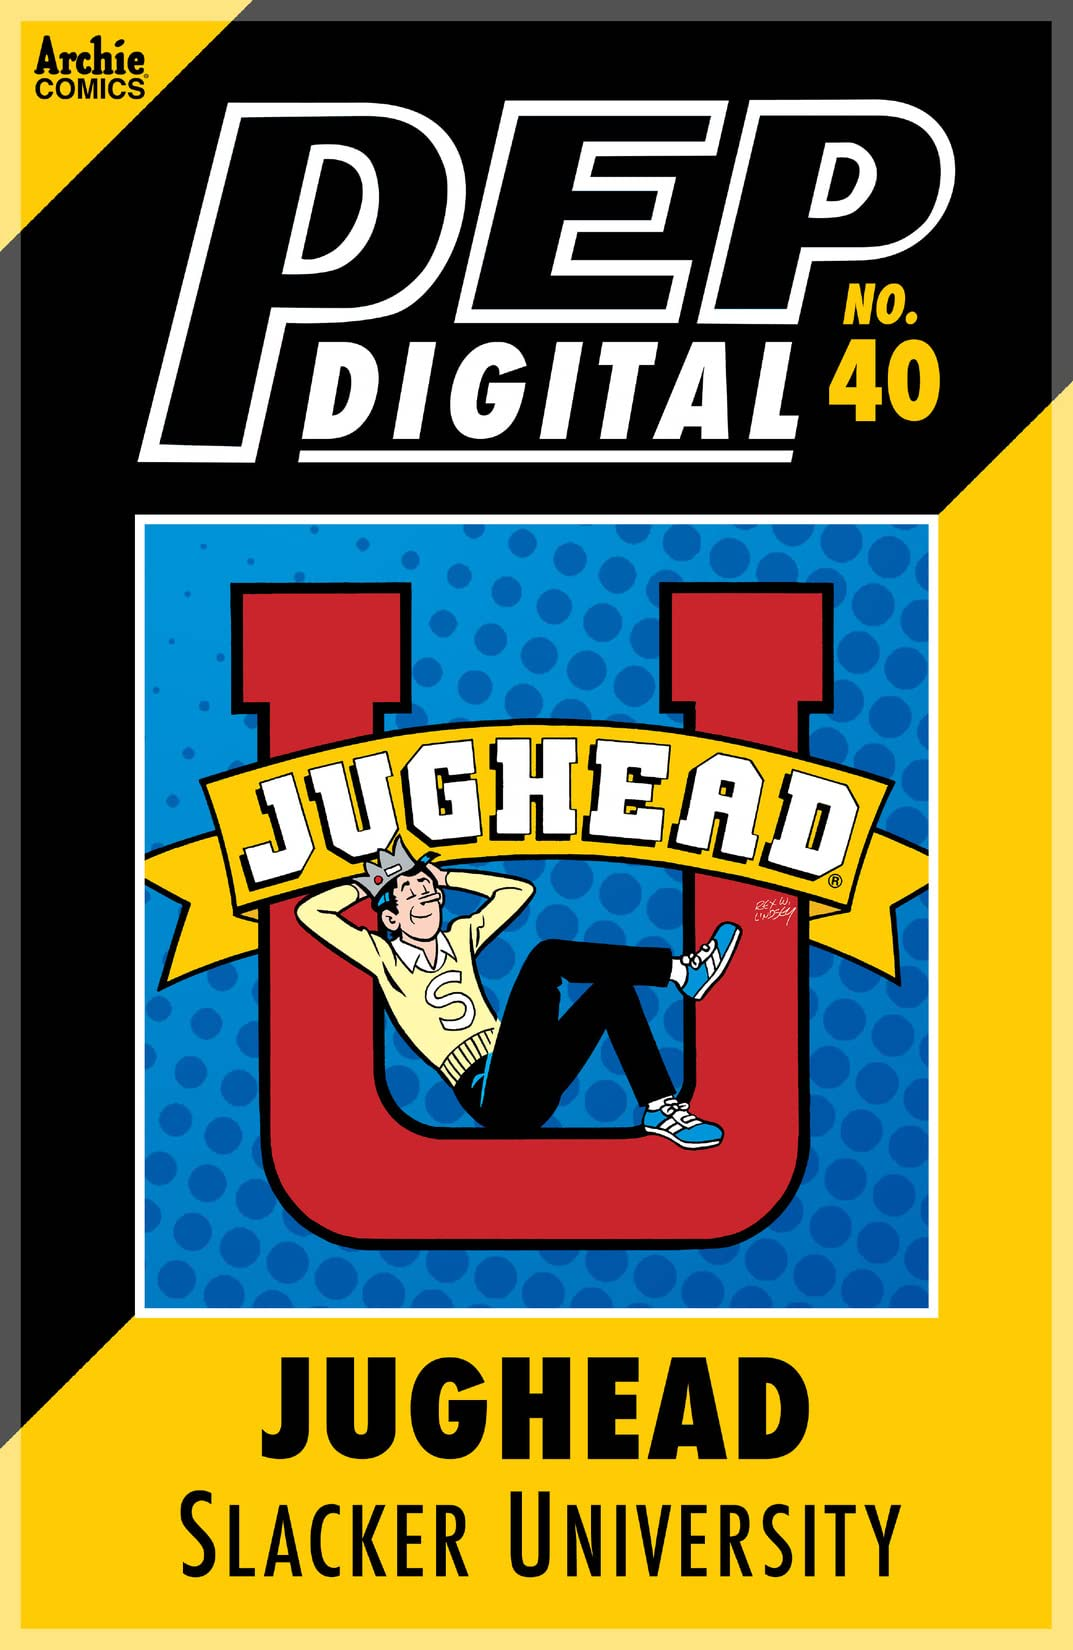 PEP Digital #40: Jughead Slacker University